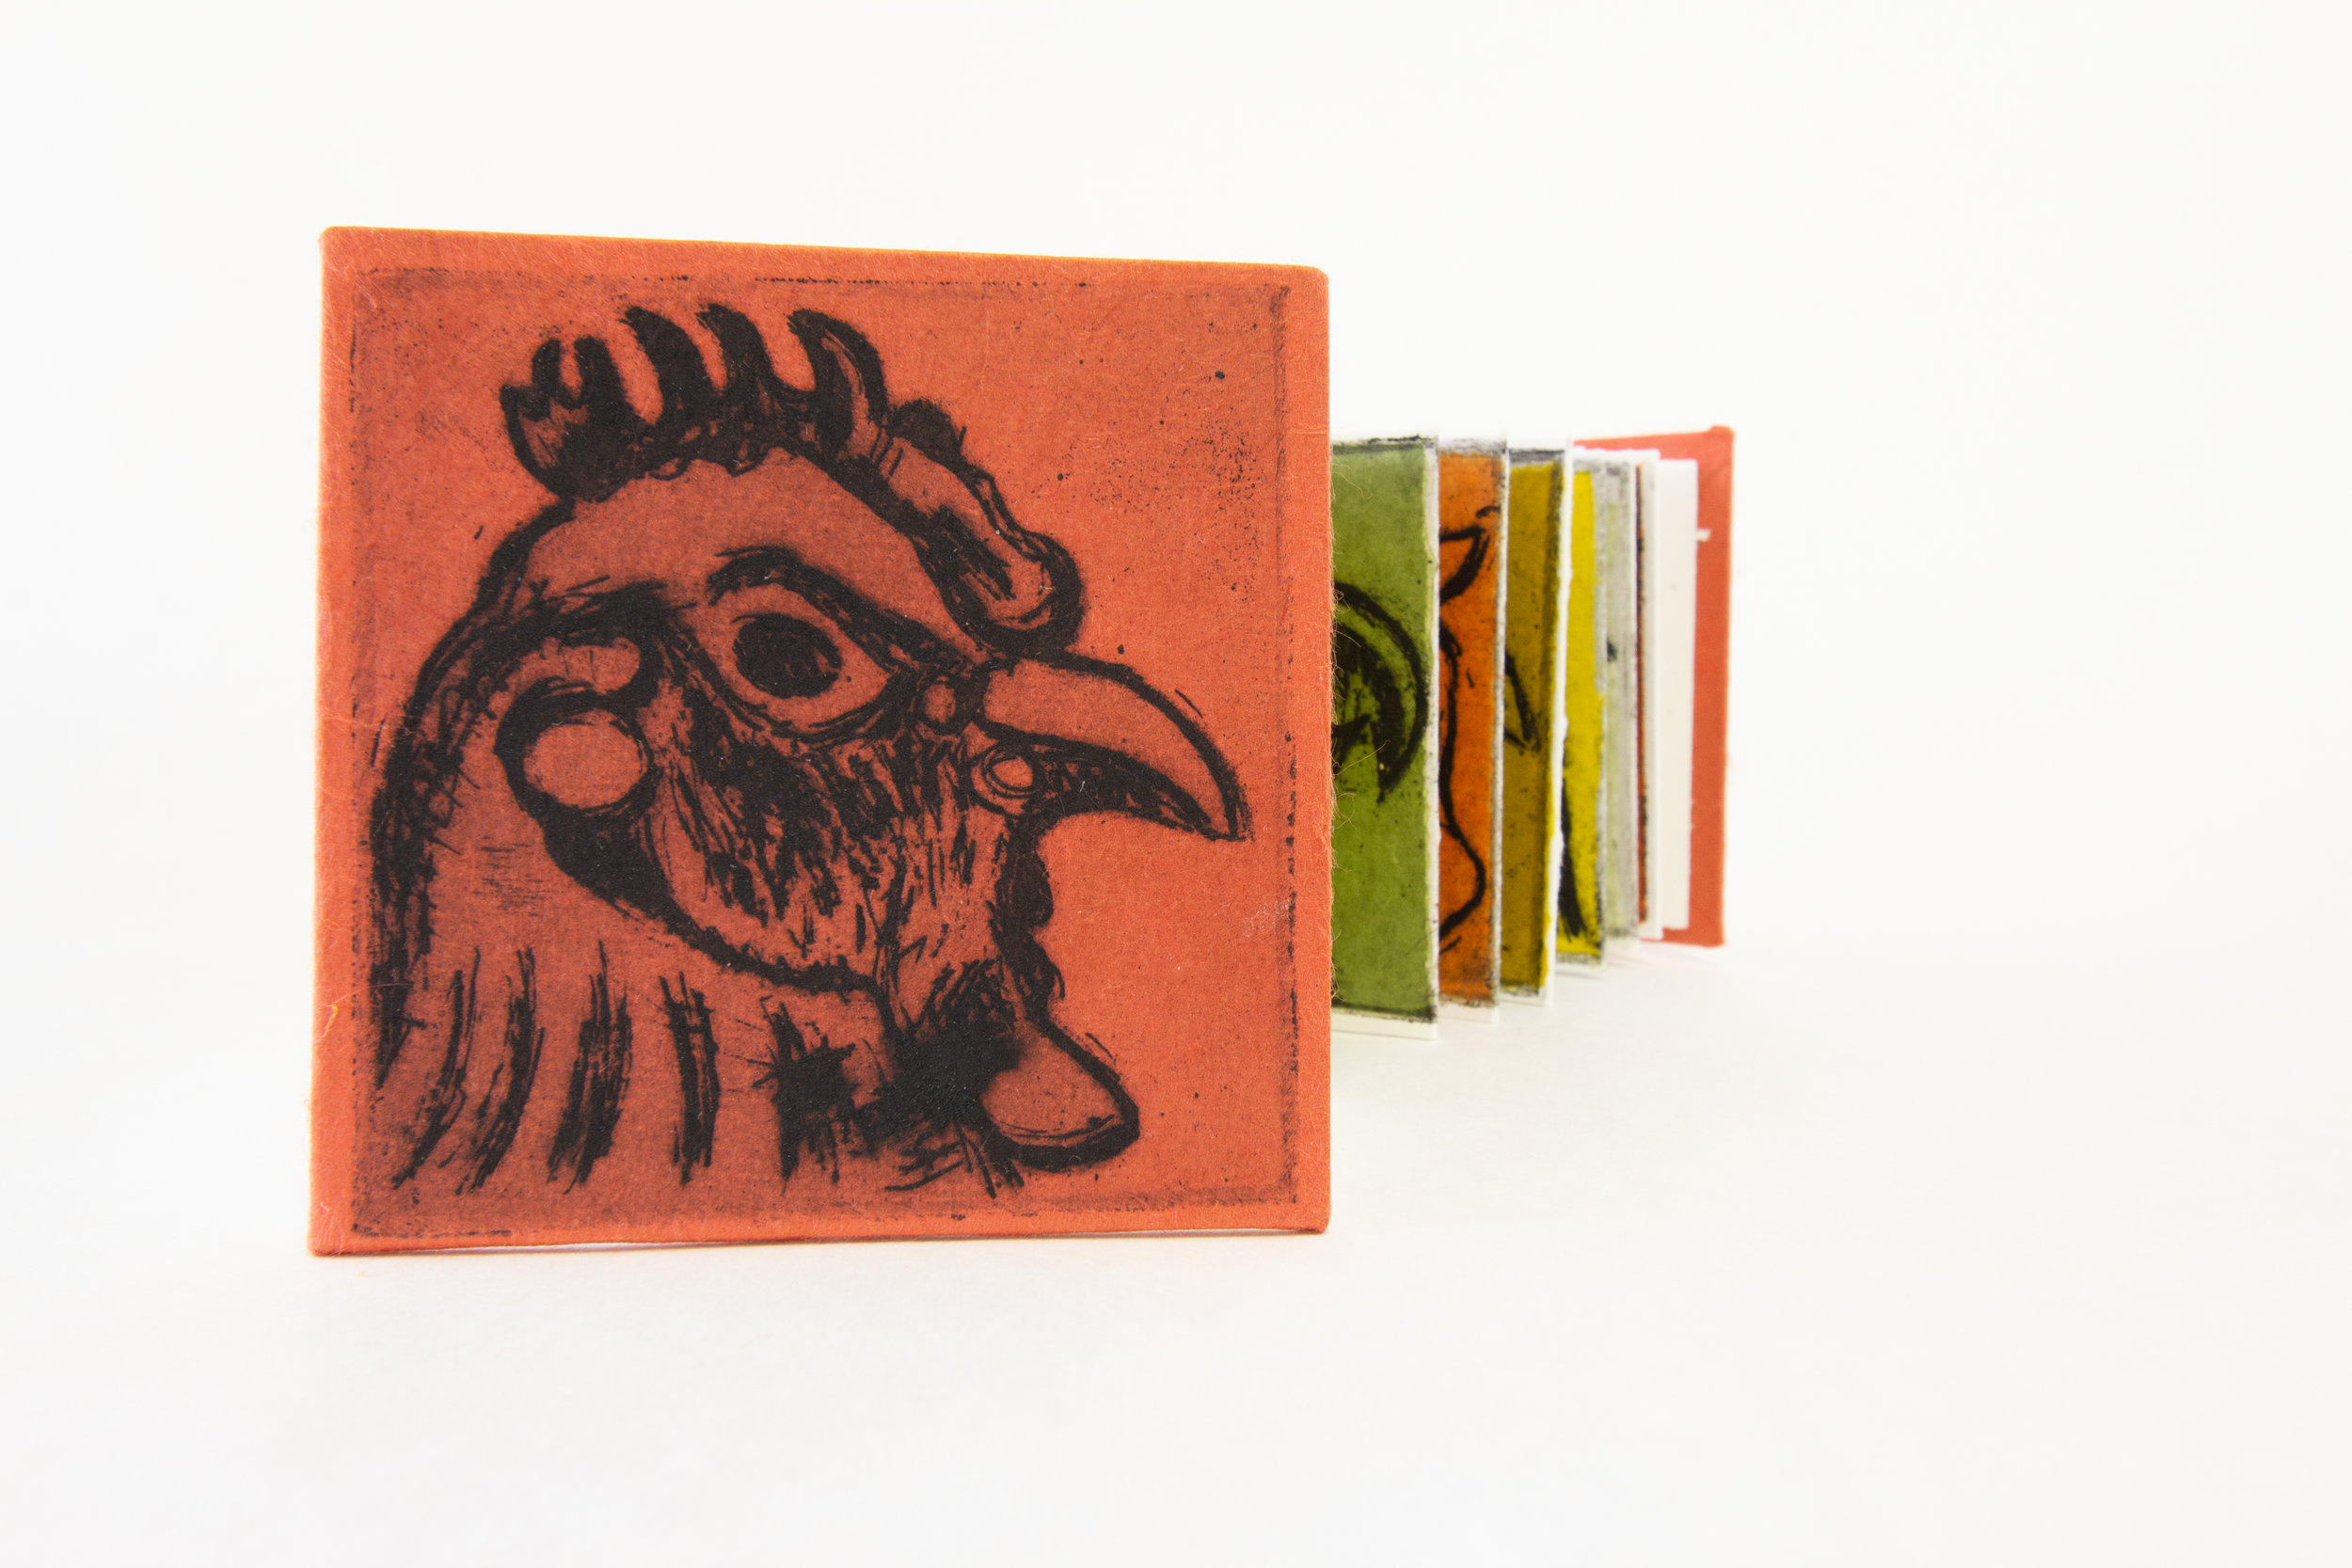 """David Johnson, """"Little Red Rooster,"""" Chine Colle Etching and Letterpress, 2018, $100, Muncie, IN"""